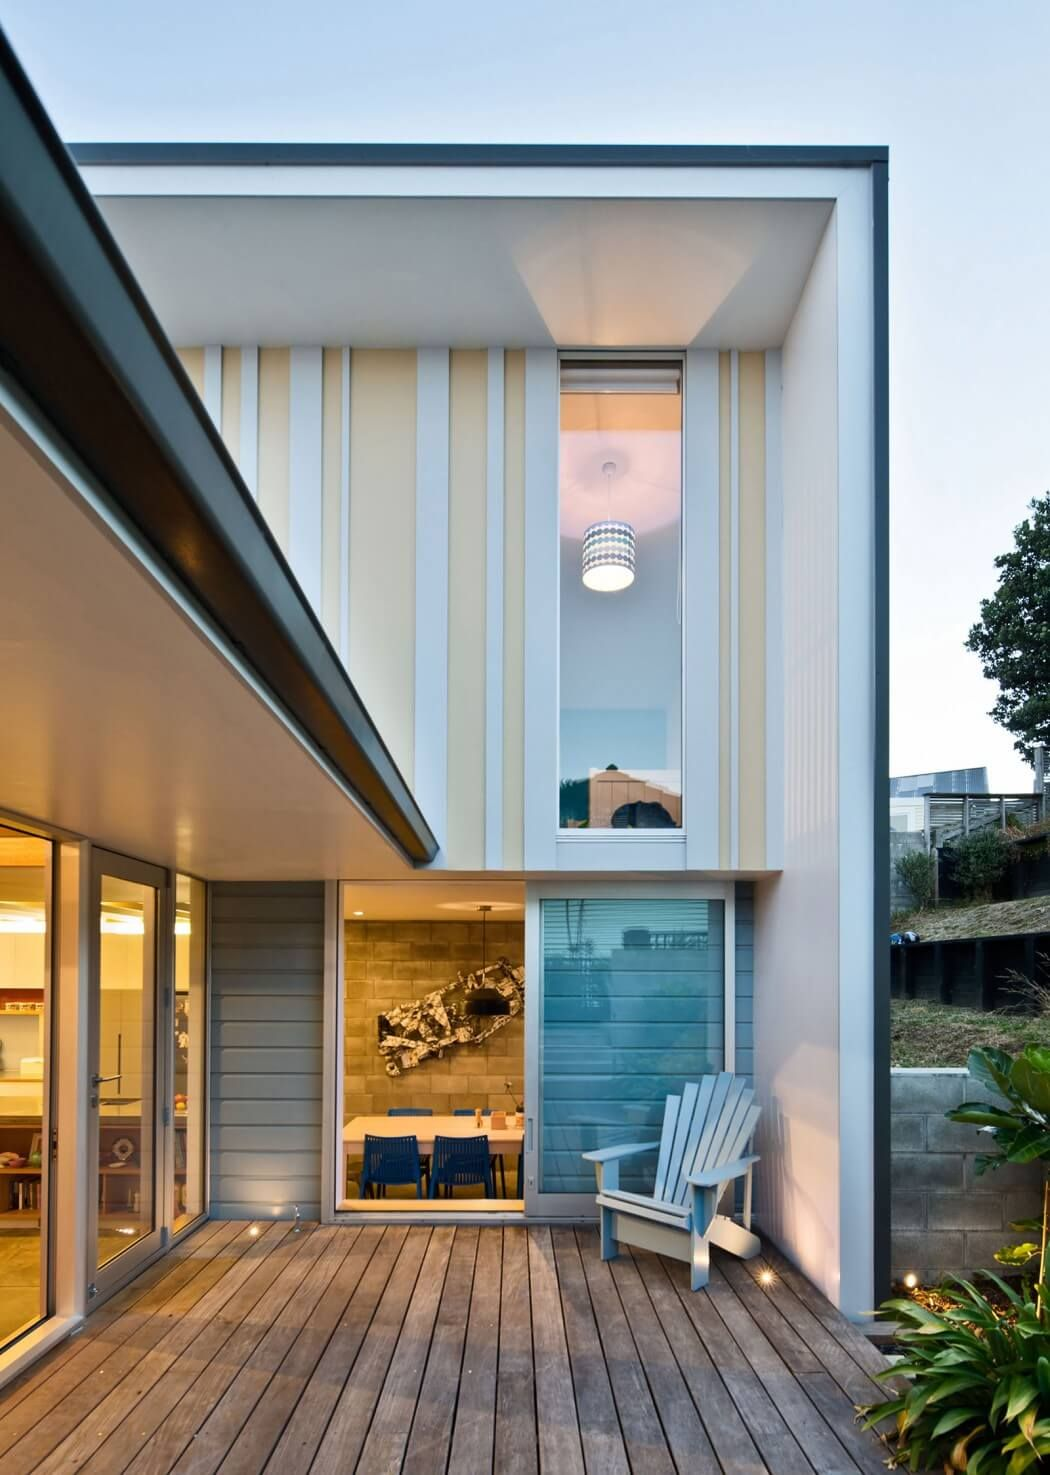 Matai House By Parsonson Architects Architecture Pinterest - Fashionable-one-storey-house-by-parsonson-architects